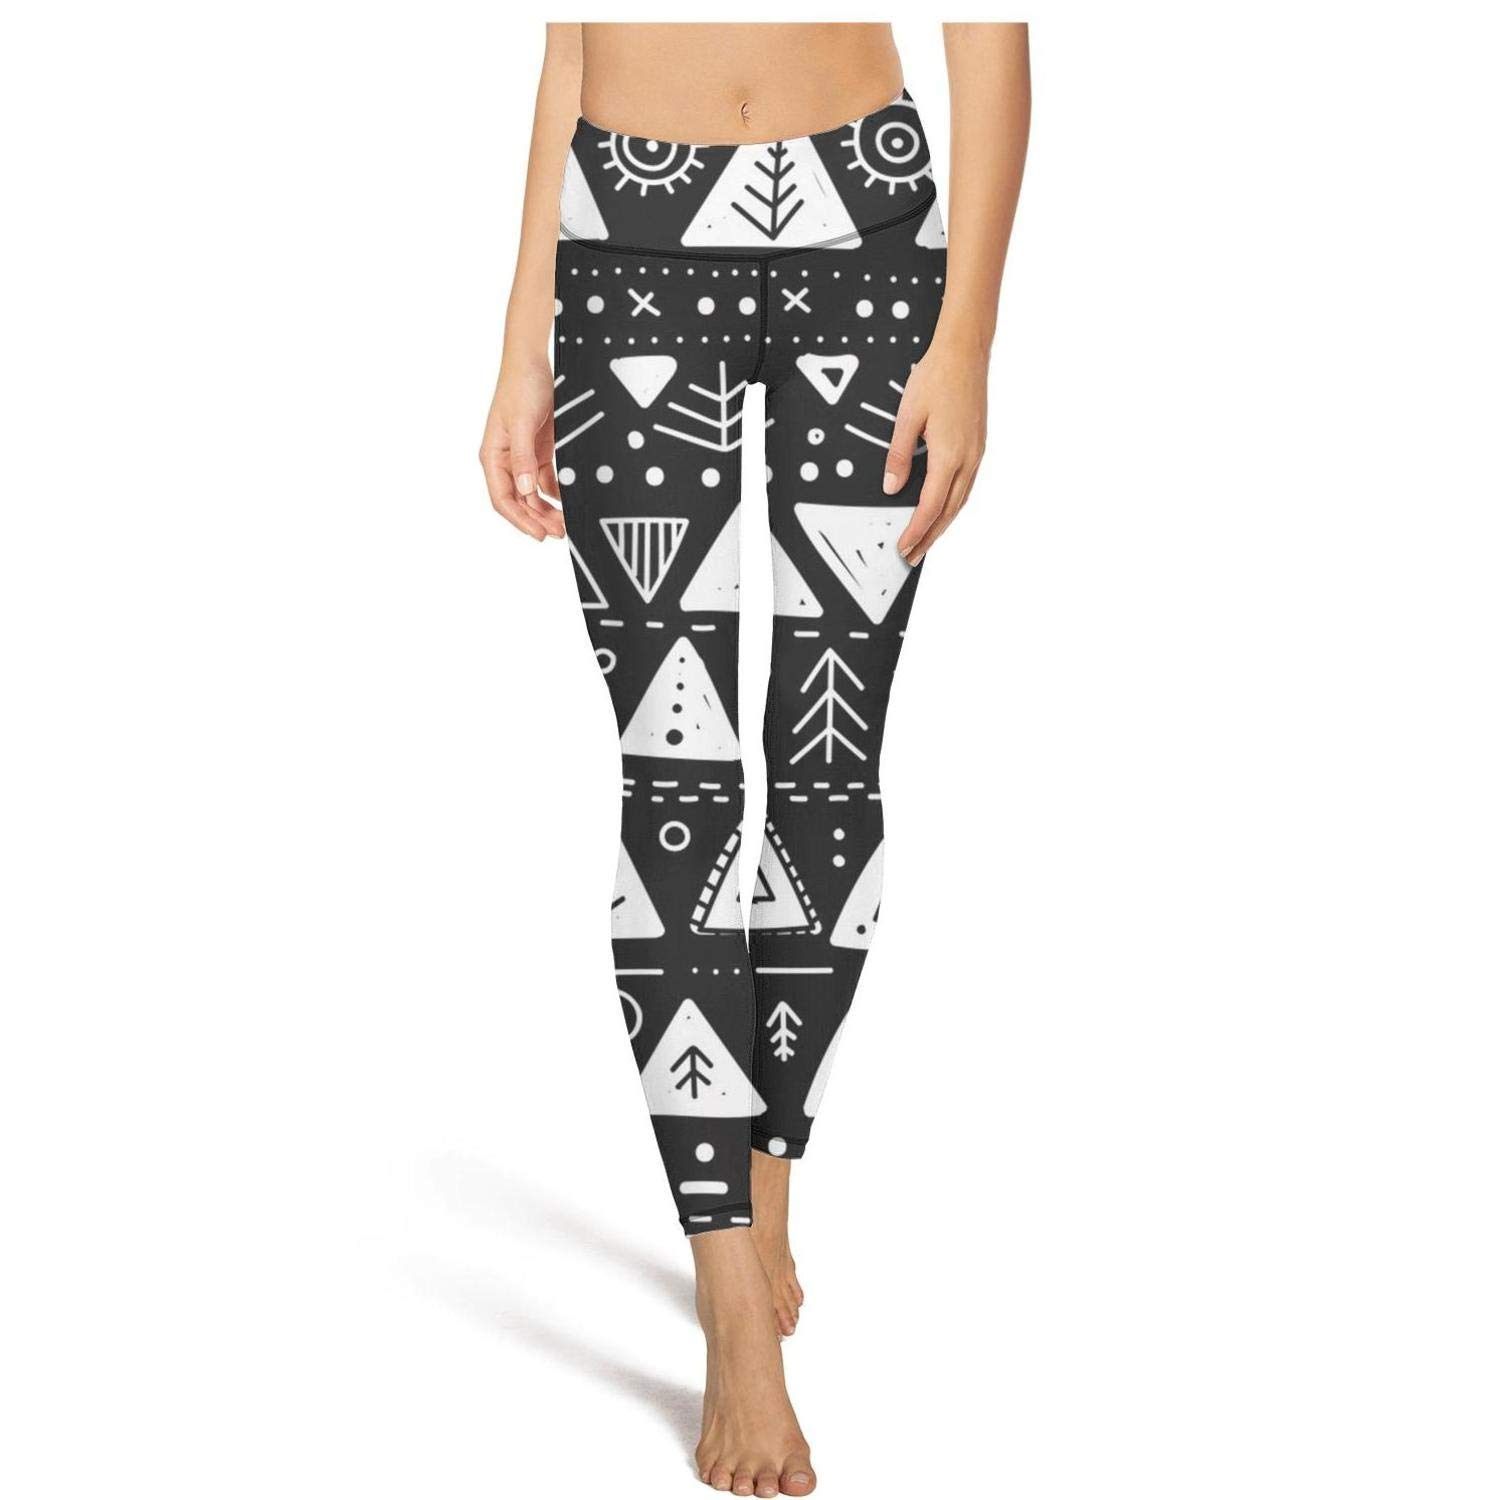 AugGThomas Womens Black and White Bohemian Style Workout Running Leggings Tummy Control Essential Yoga Pants with Pockets